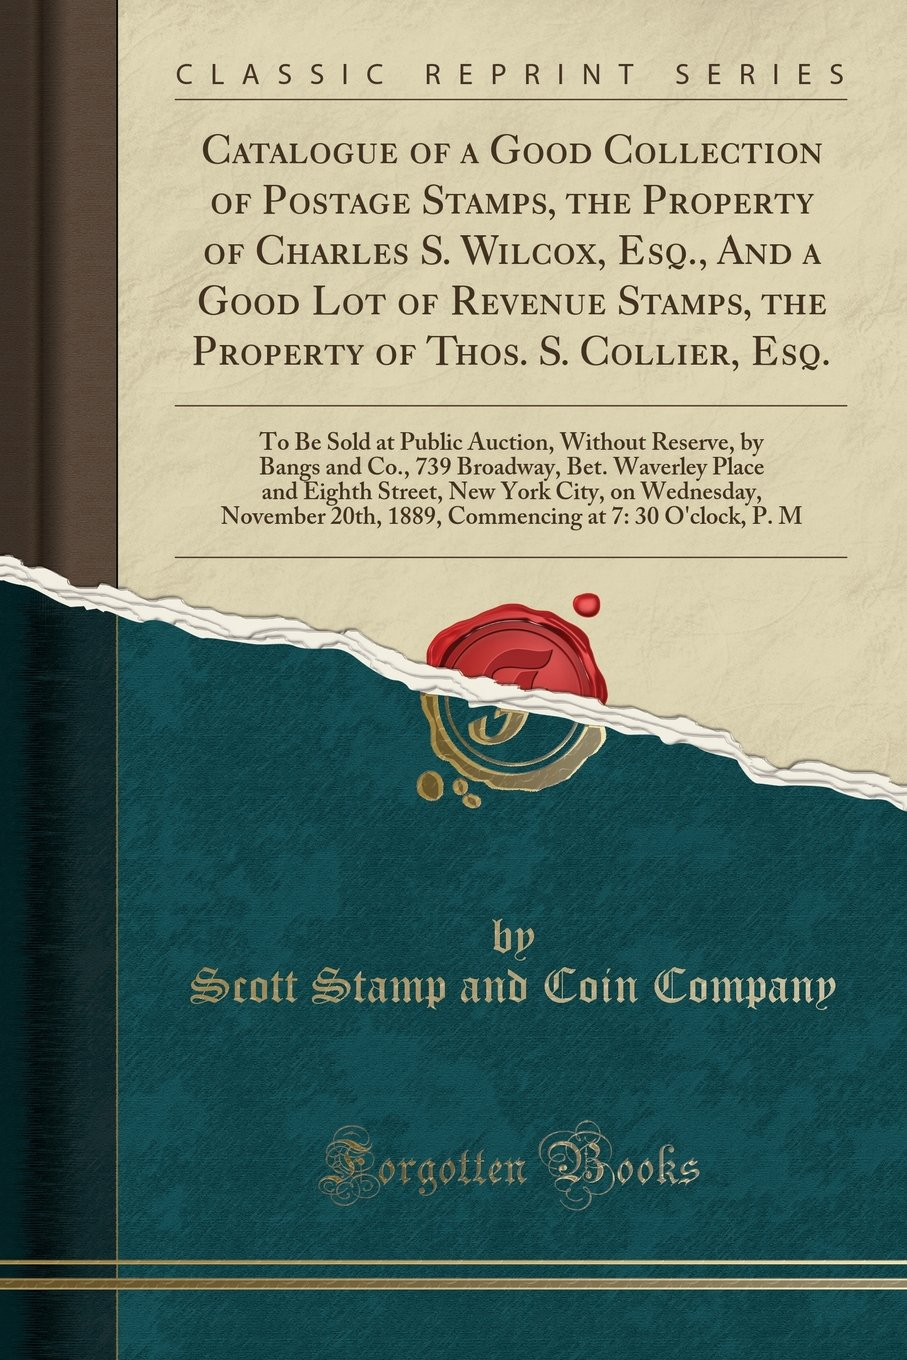 Download Catalogue of a Good Collection of Postage Stamps, the Property of Charles S. Wilcox, Esq., And a Good Lot of Revenue Stamps, the Property of Thos. S. ... by Bangs and Co., 739 Broadway, Bet. Waverl PDF